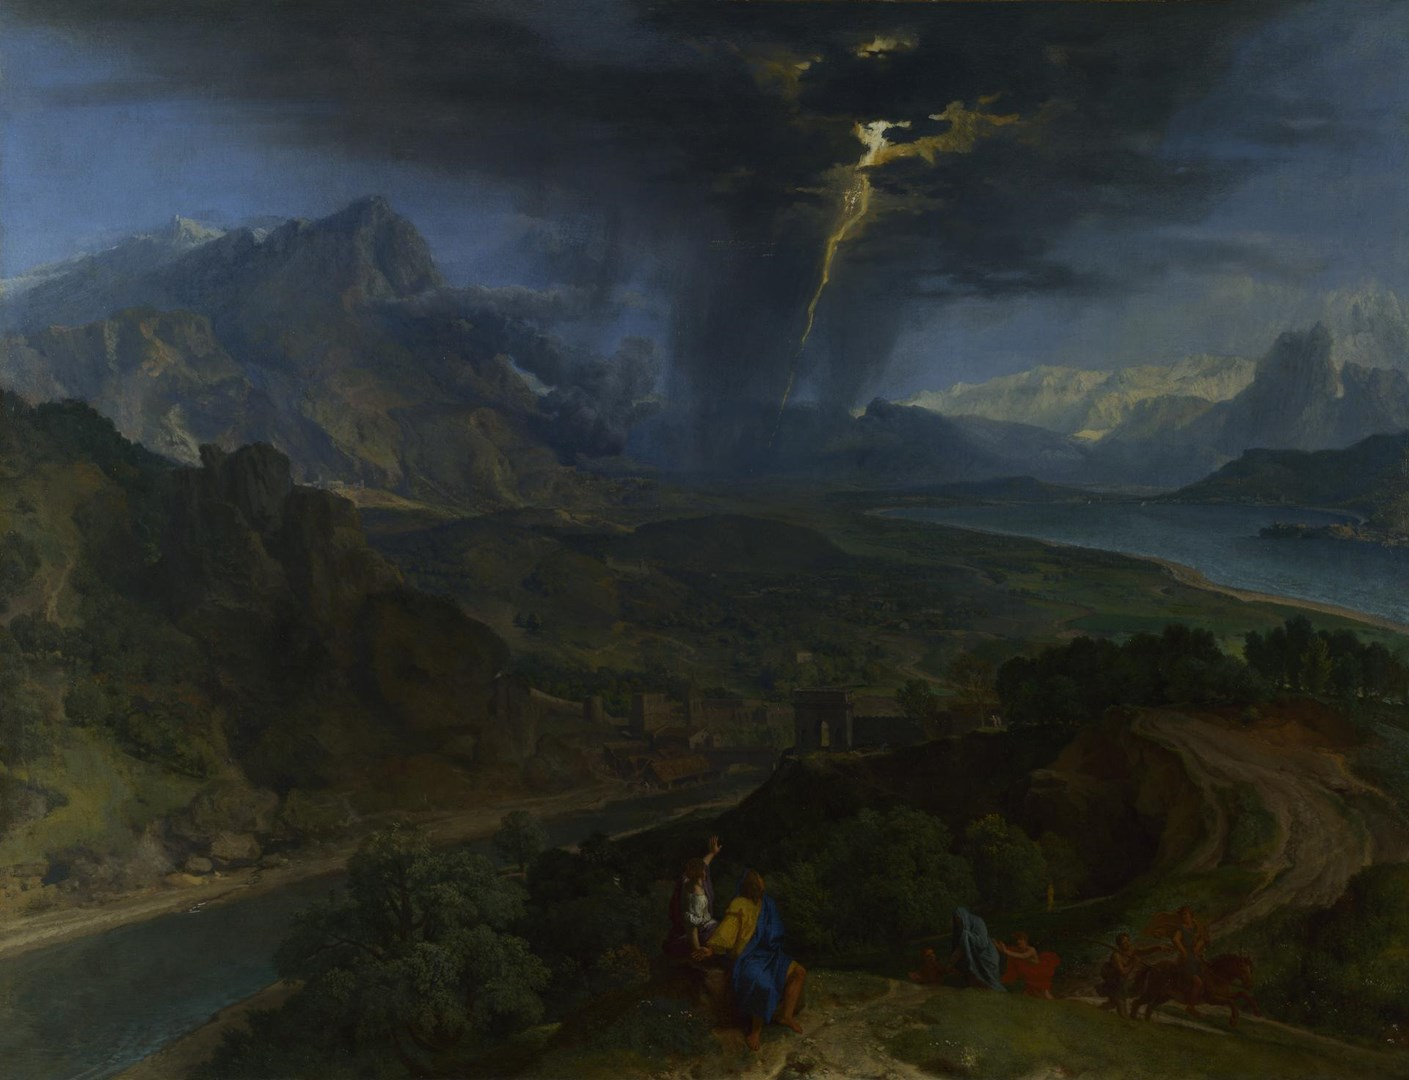 Mountain Landscape with Lightning by Francisque Millet